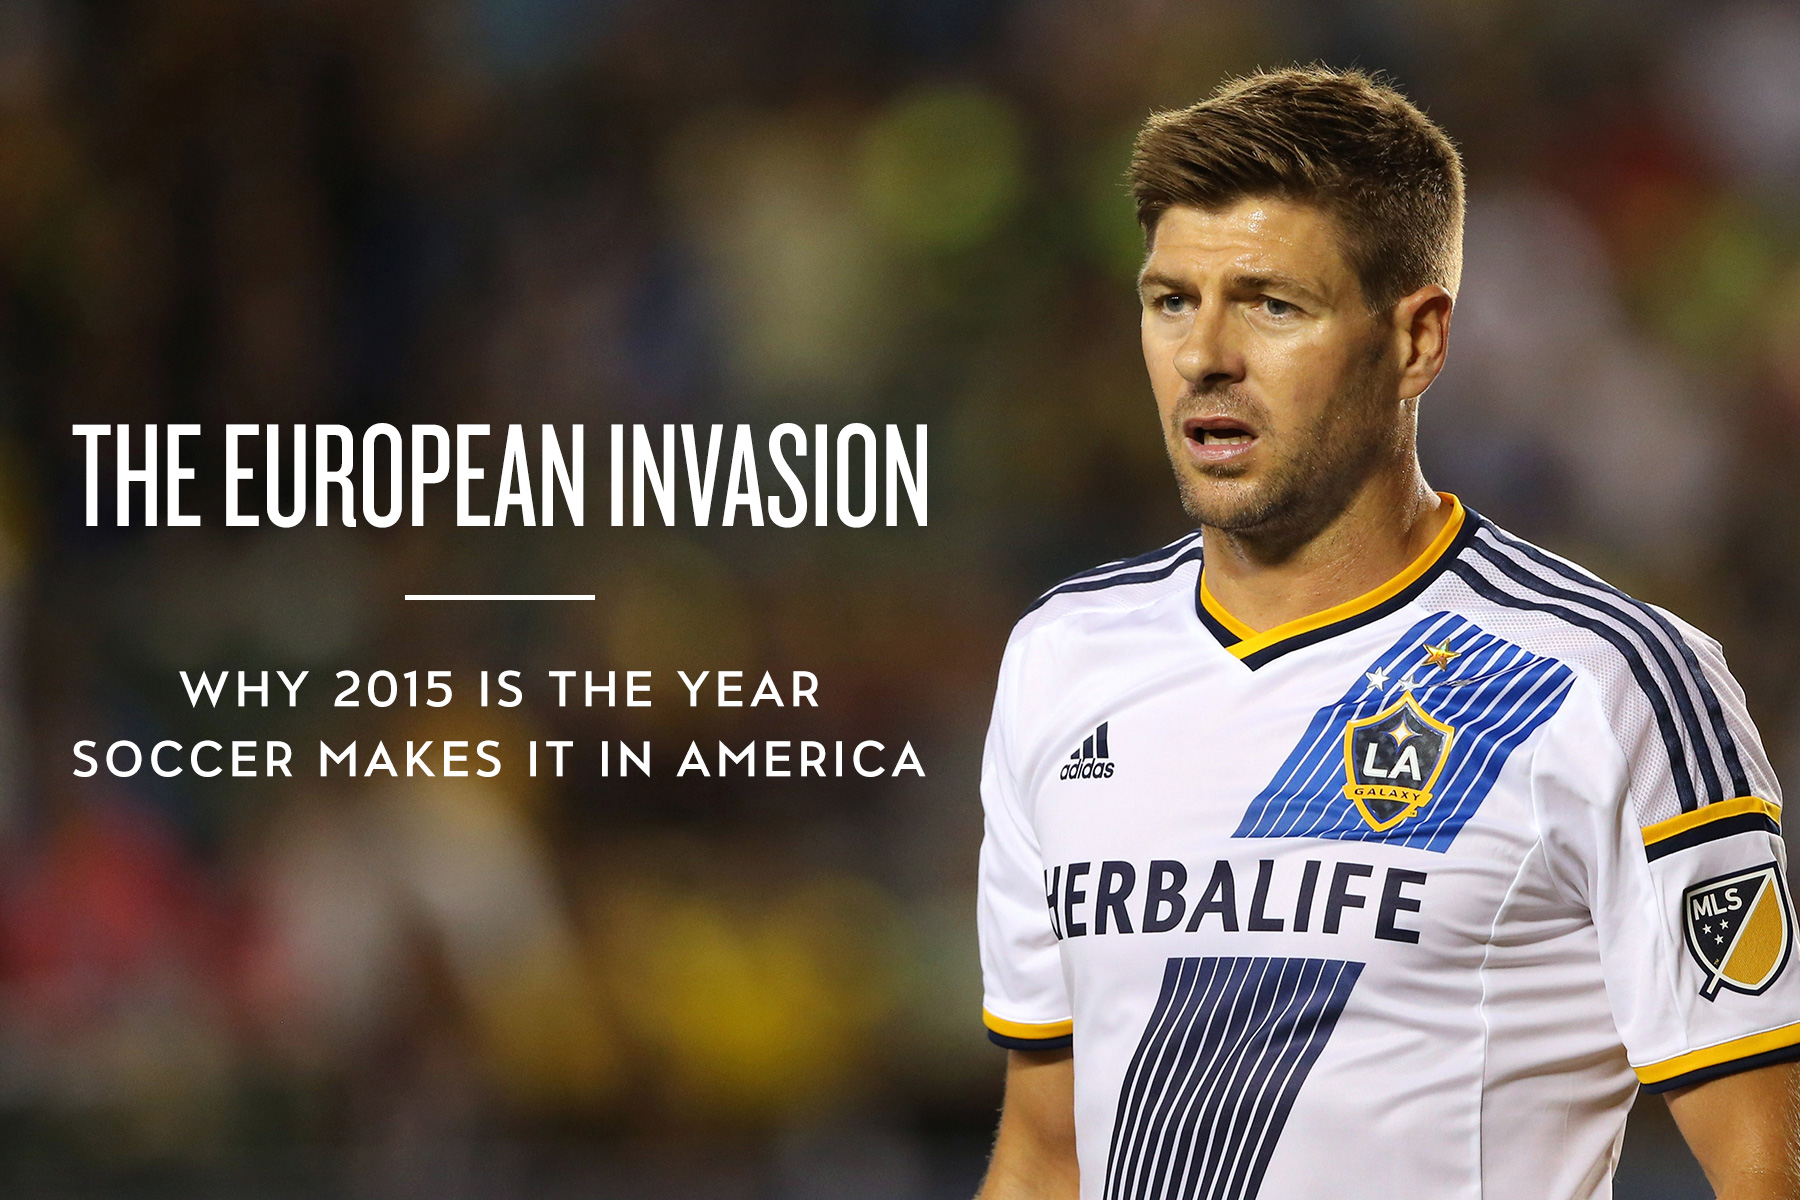 The European Invasion: Why 2015 Is the Year Soccer Makes It in America